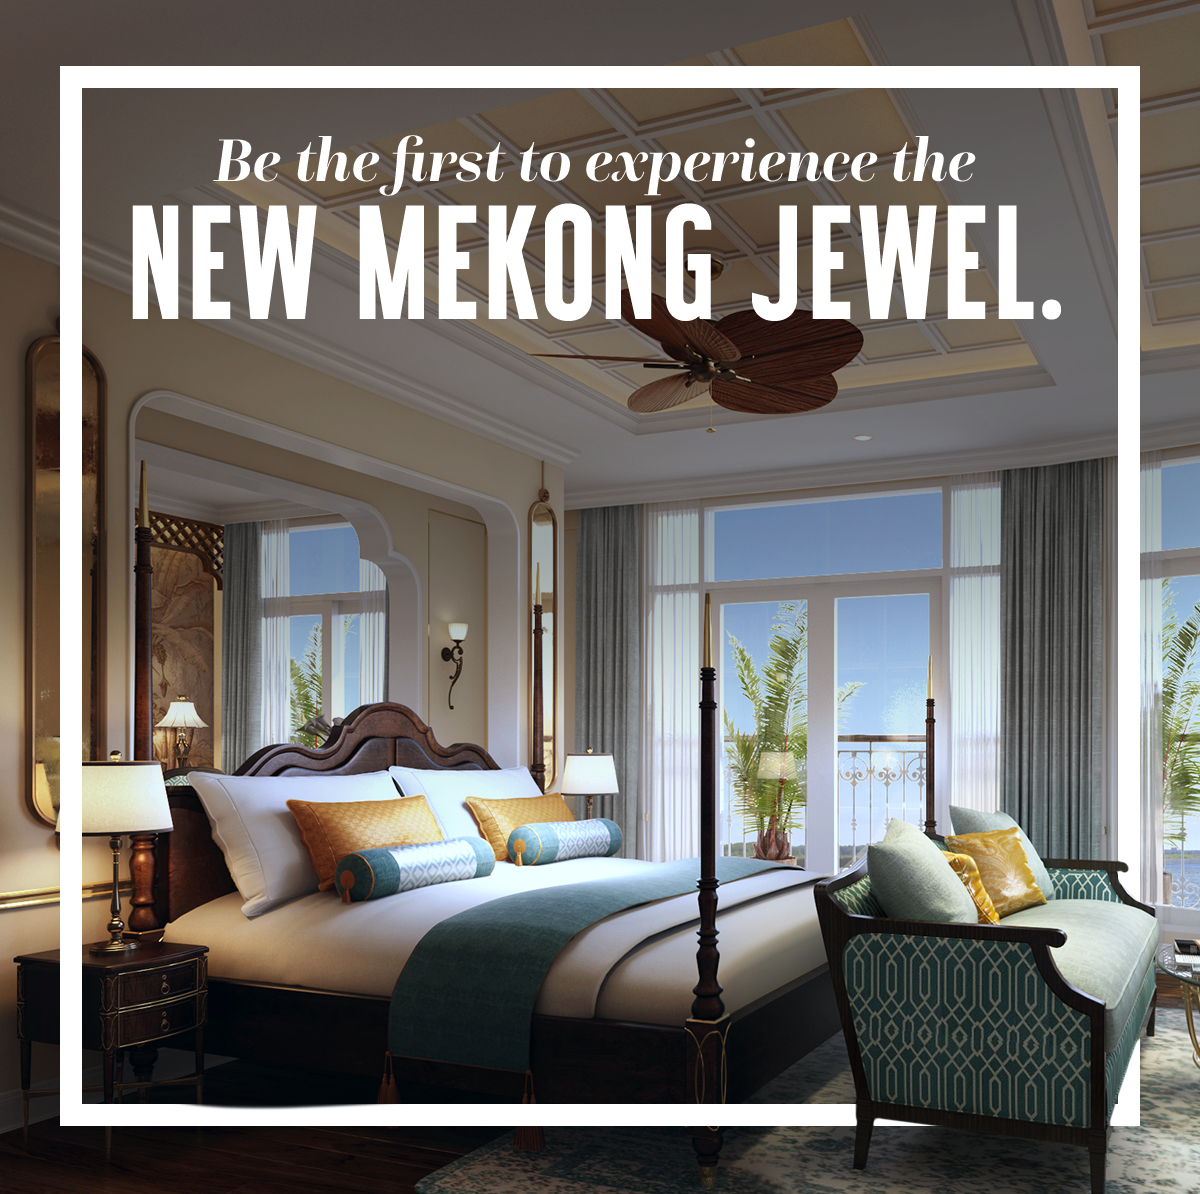 Be the first to experience the new Mekong Jewel.